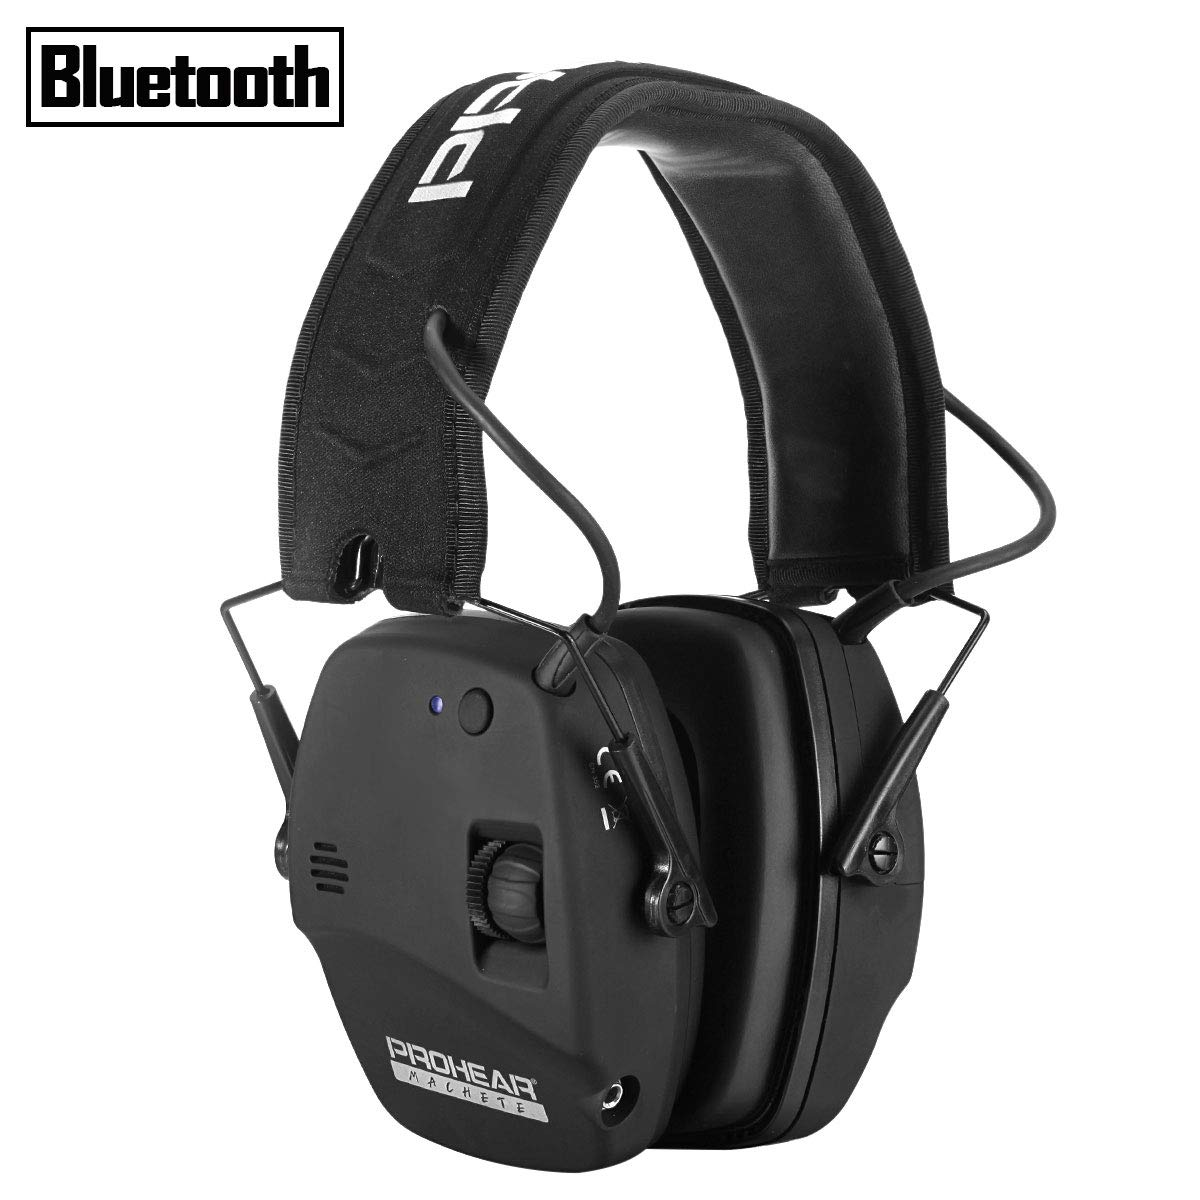 PROHEAR 030 Electronic Shooting Ear Protection Muffs with Bluetooth, Sound Amplification Noise Reduction Hearing Protector, Perfect for Hunting and Shooting - Black